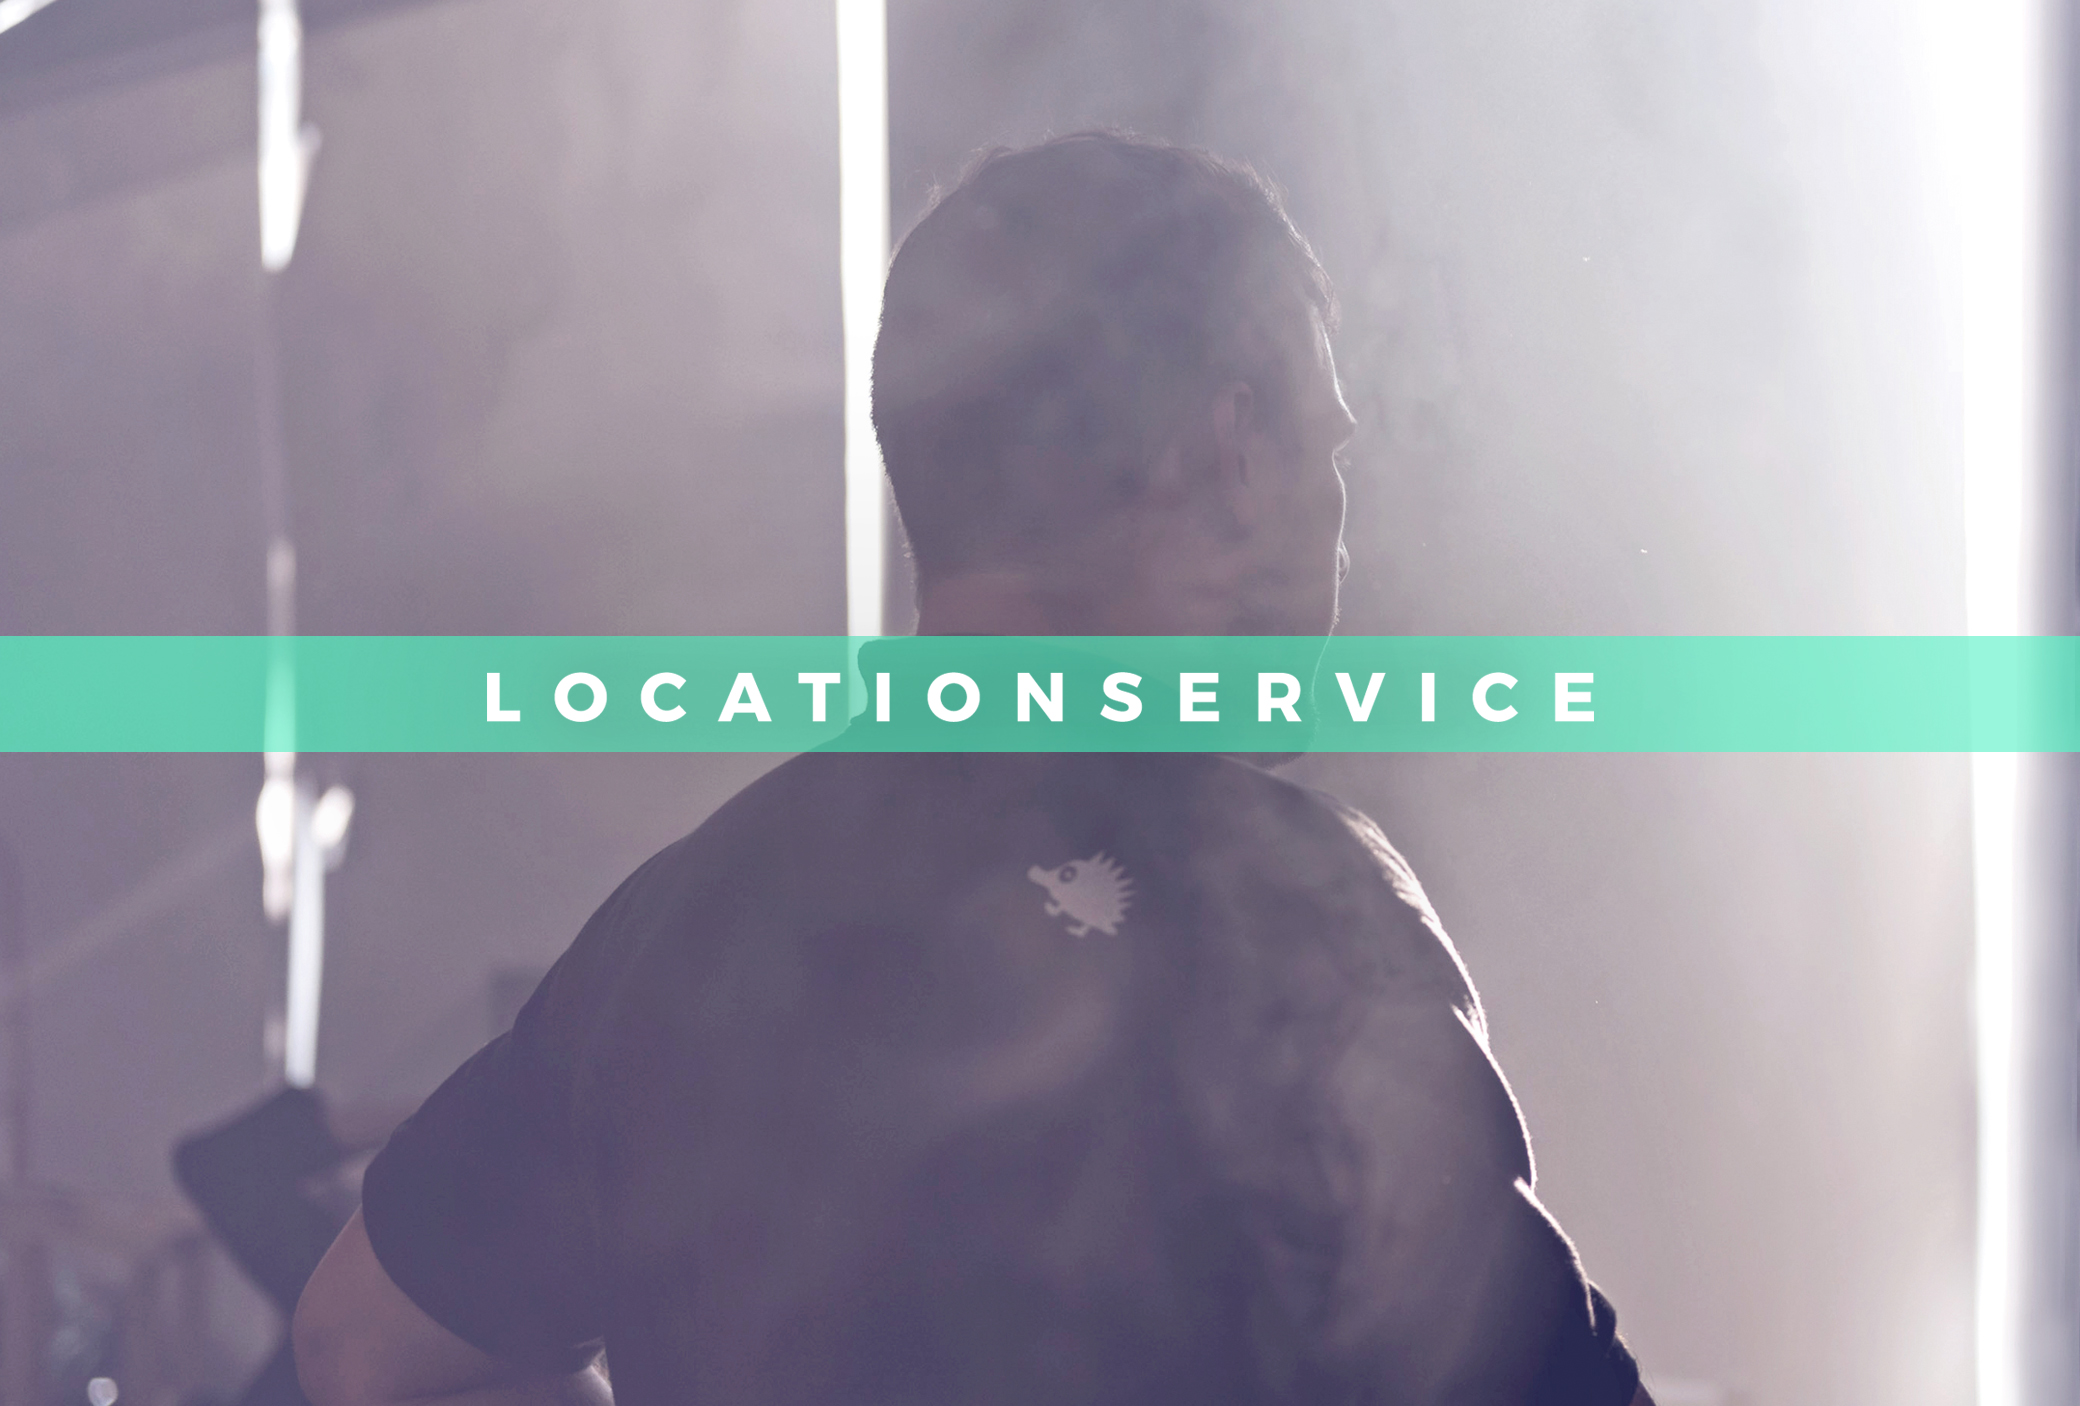 LOCATIONSERVICE